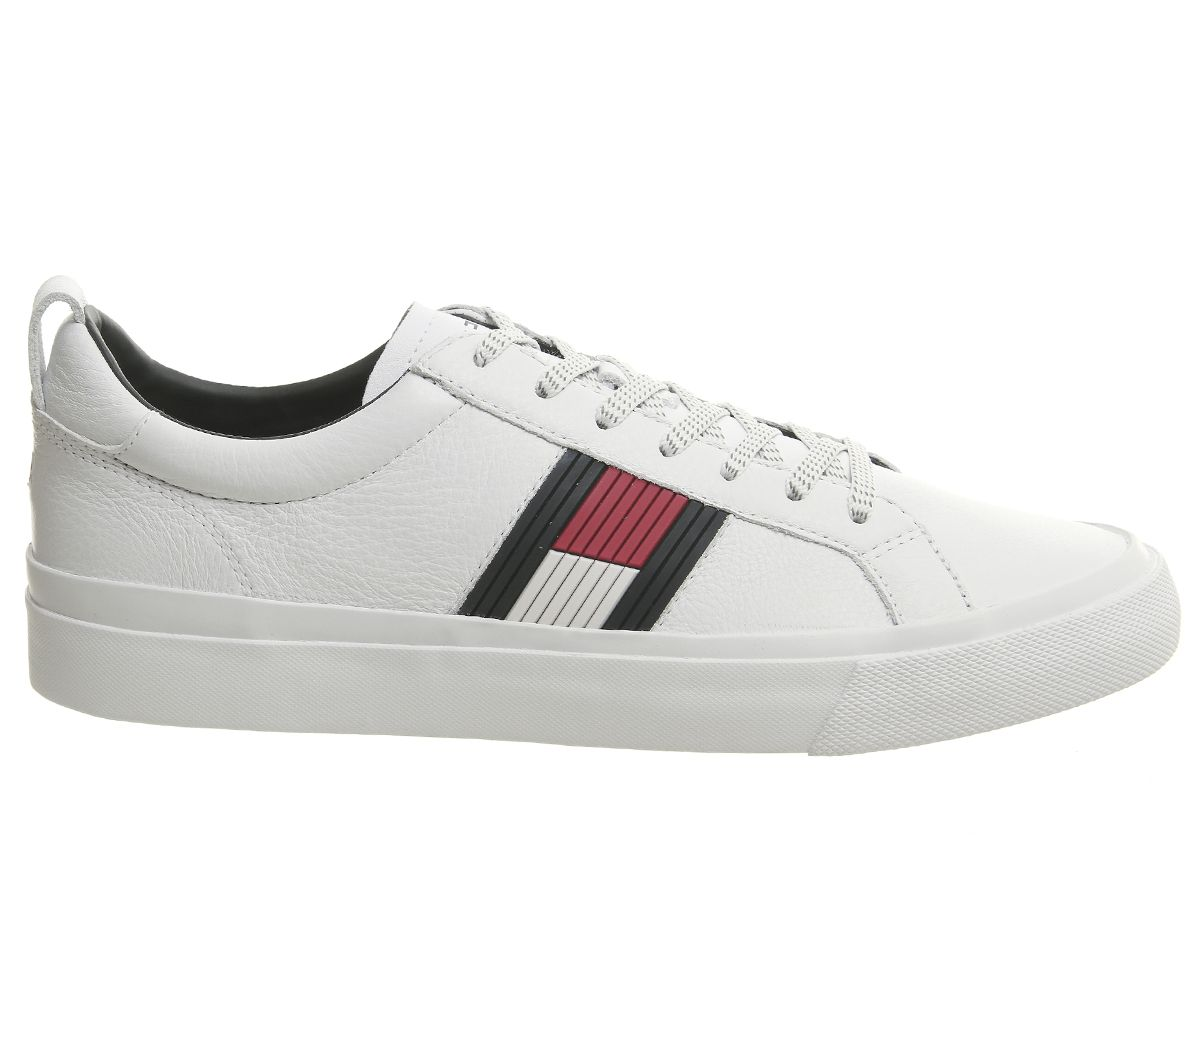 5687327ae Sentinel Mens Tommy Hilfiger Flag Detail Trainers White Casual Shoes